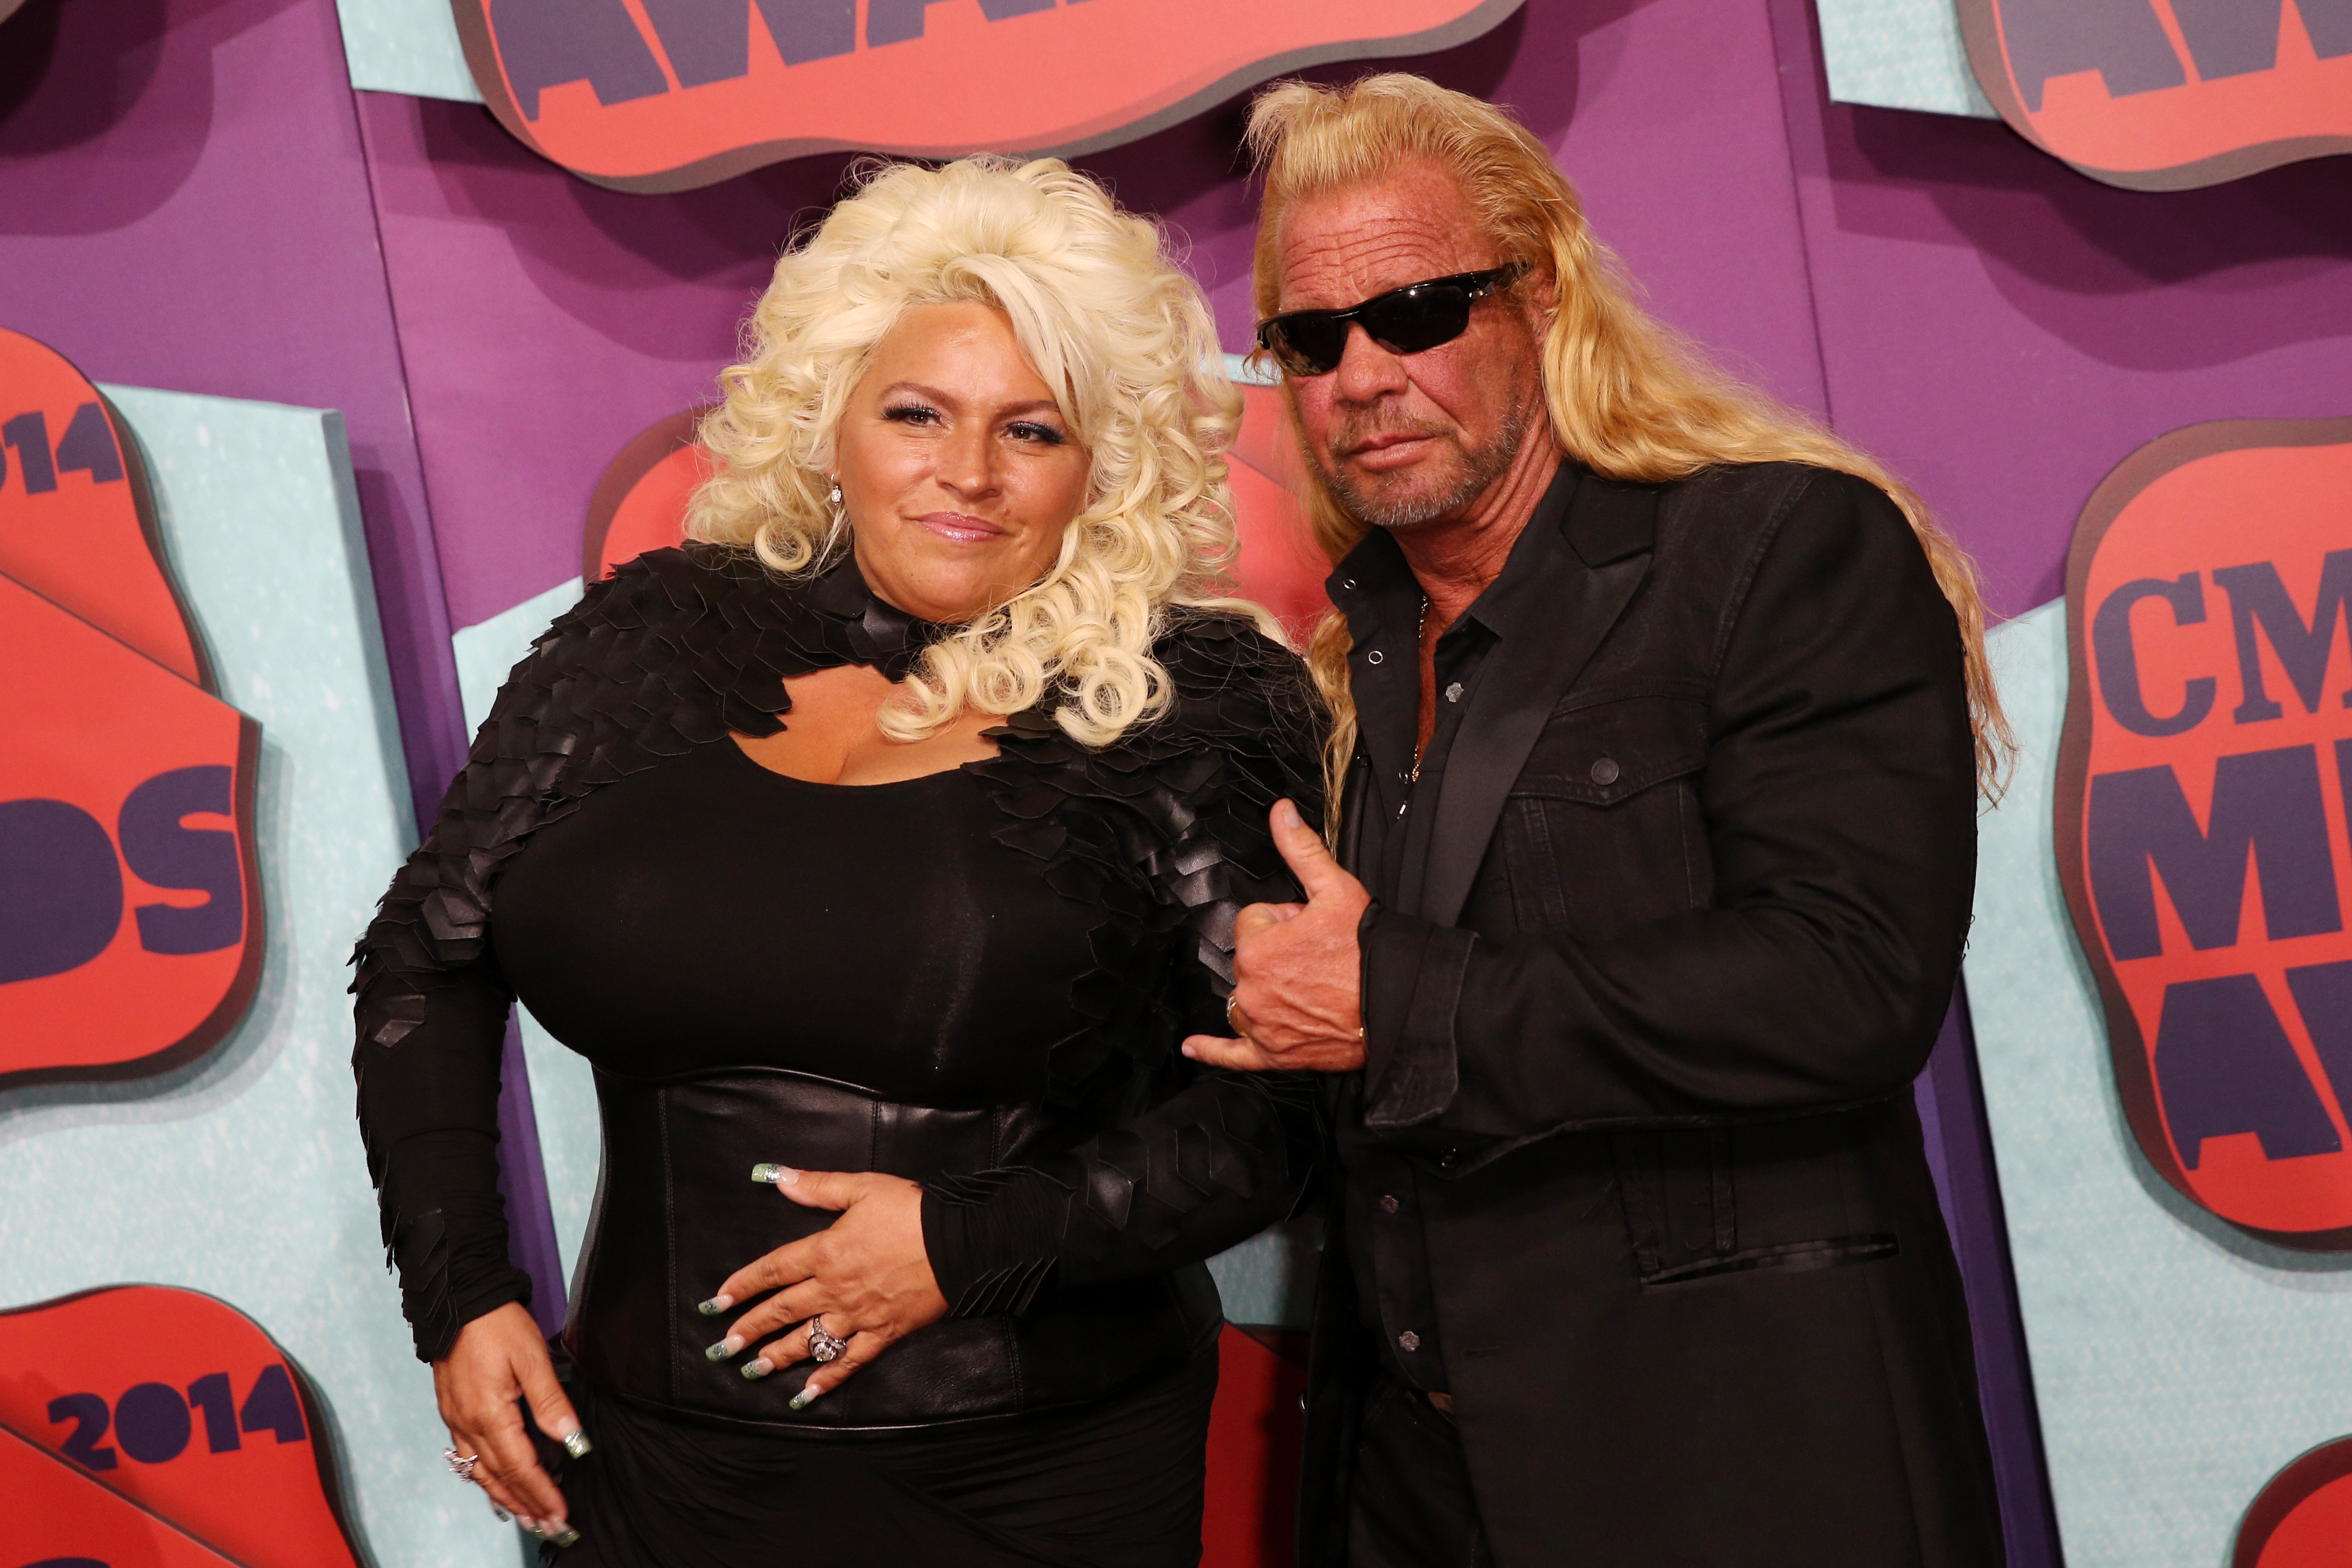 Beth and Duane Chapman at the CMT Music Awards at the Bridgestone Arena on June 4, 2014, in Nashville, Tennessee | Photo: Getty Images